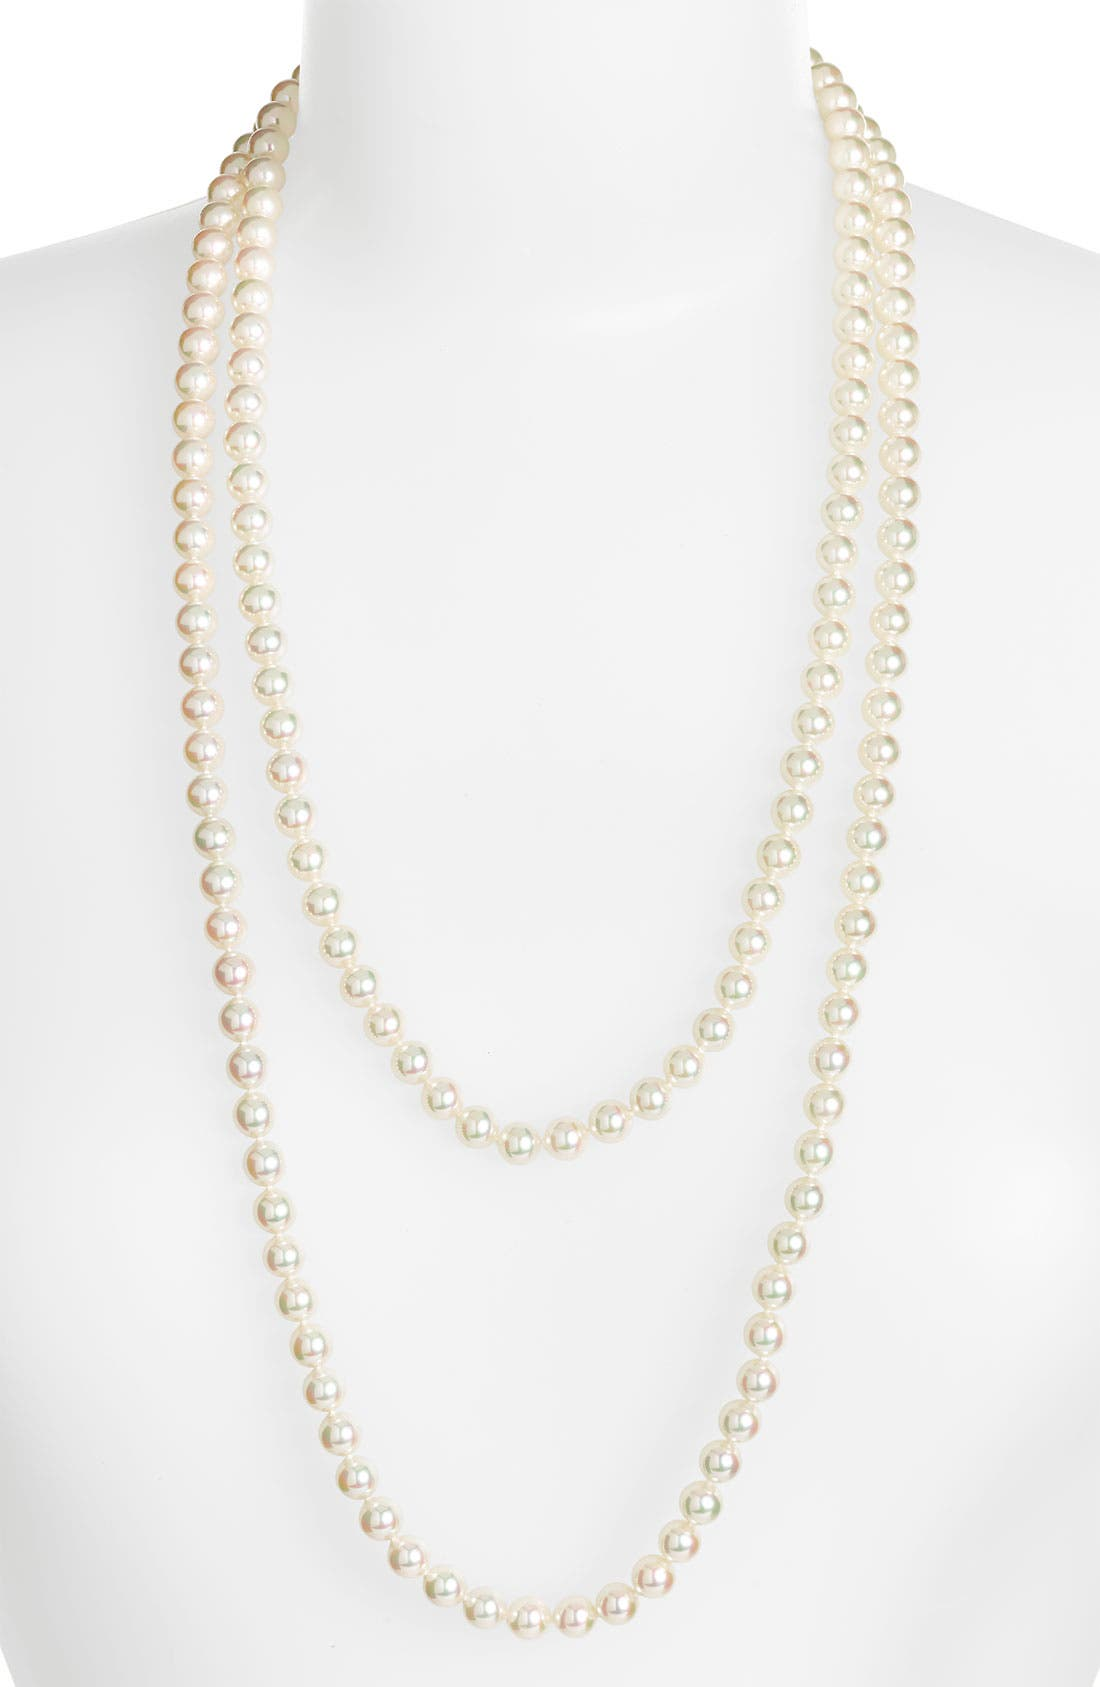 Main Image - Majorica 7mm Round Pearl Endless Rope Necklace